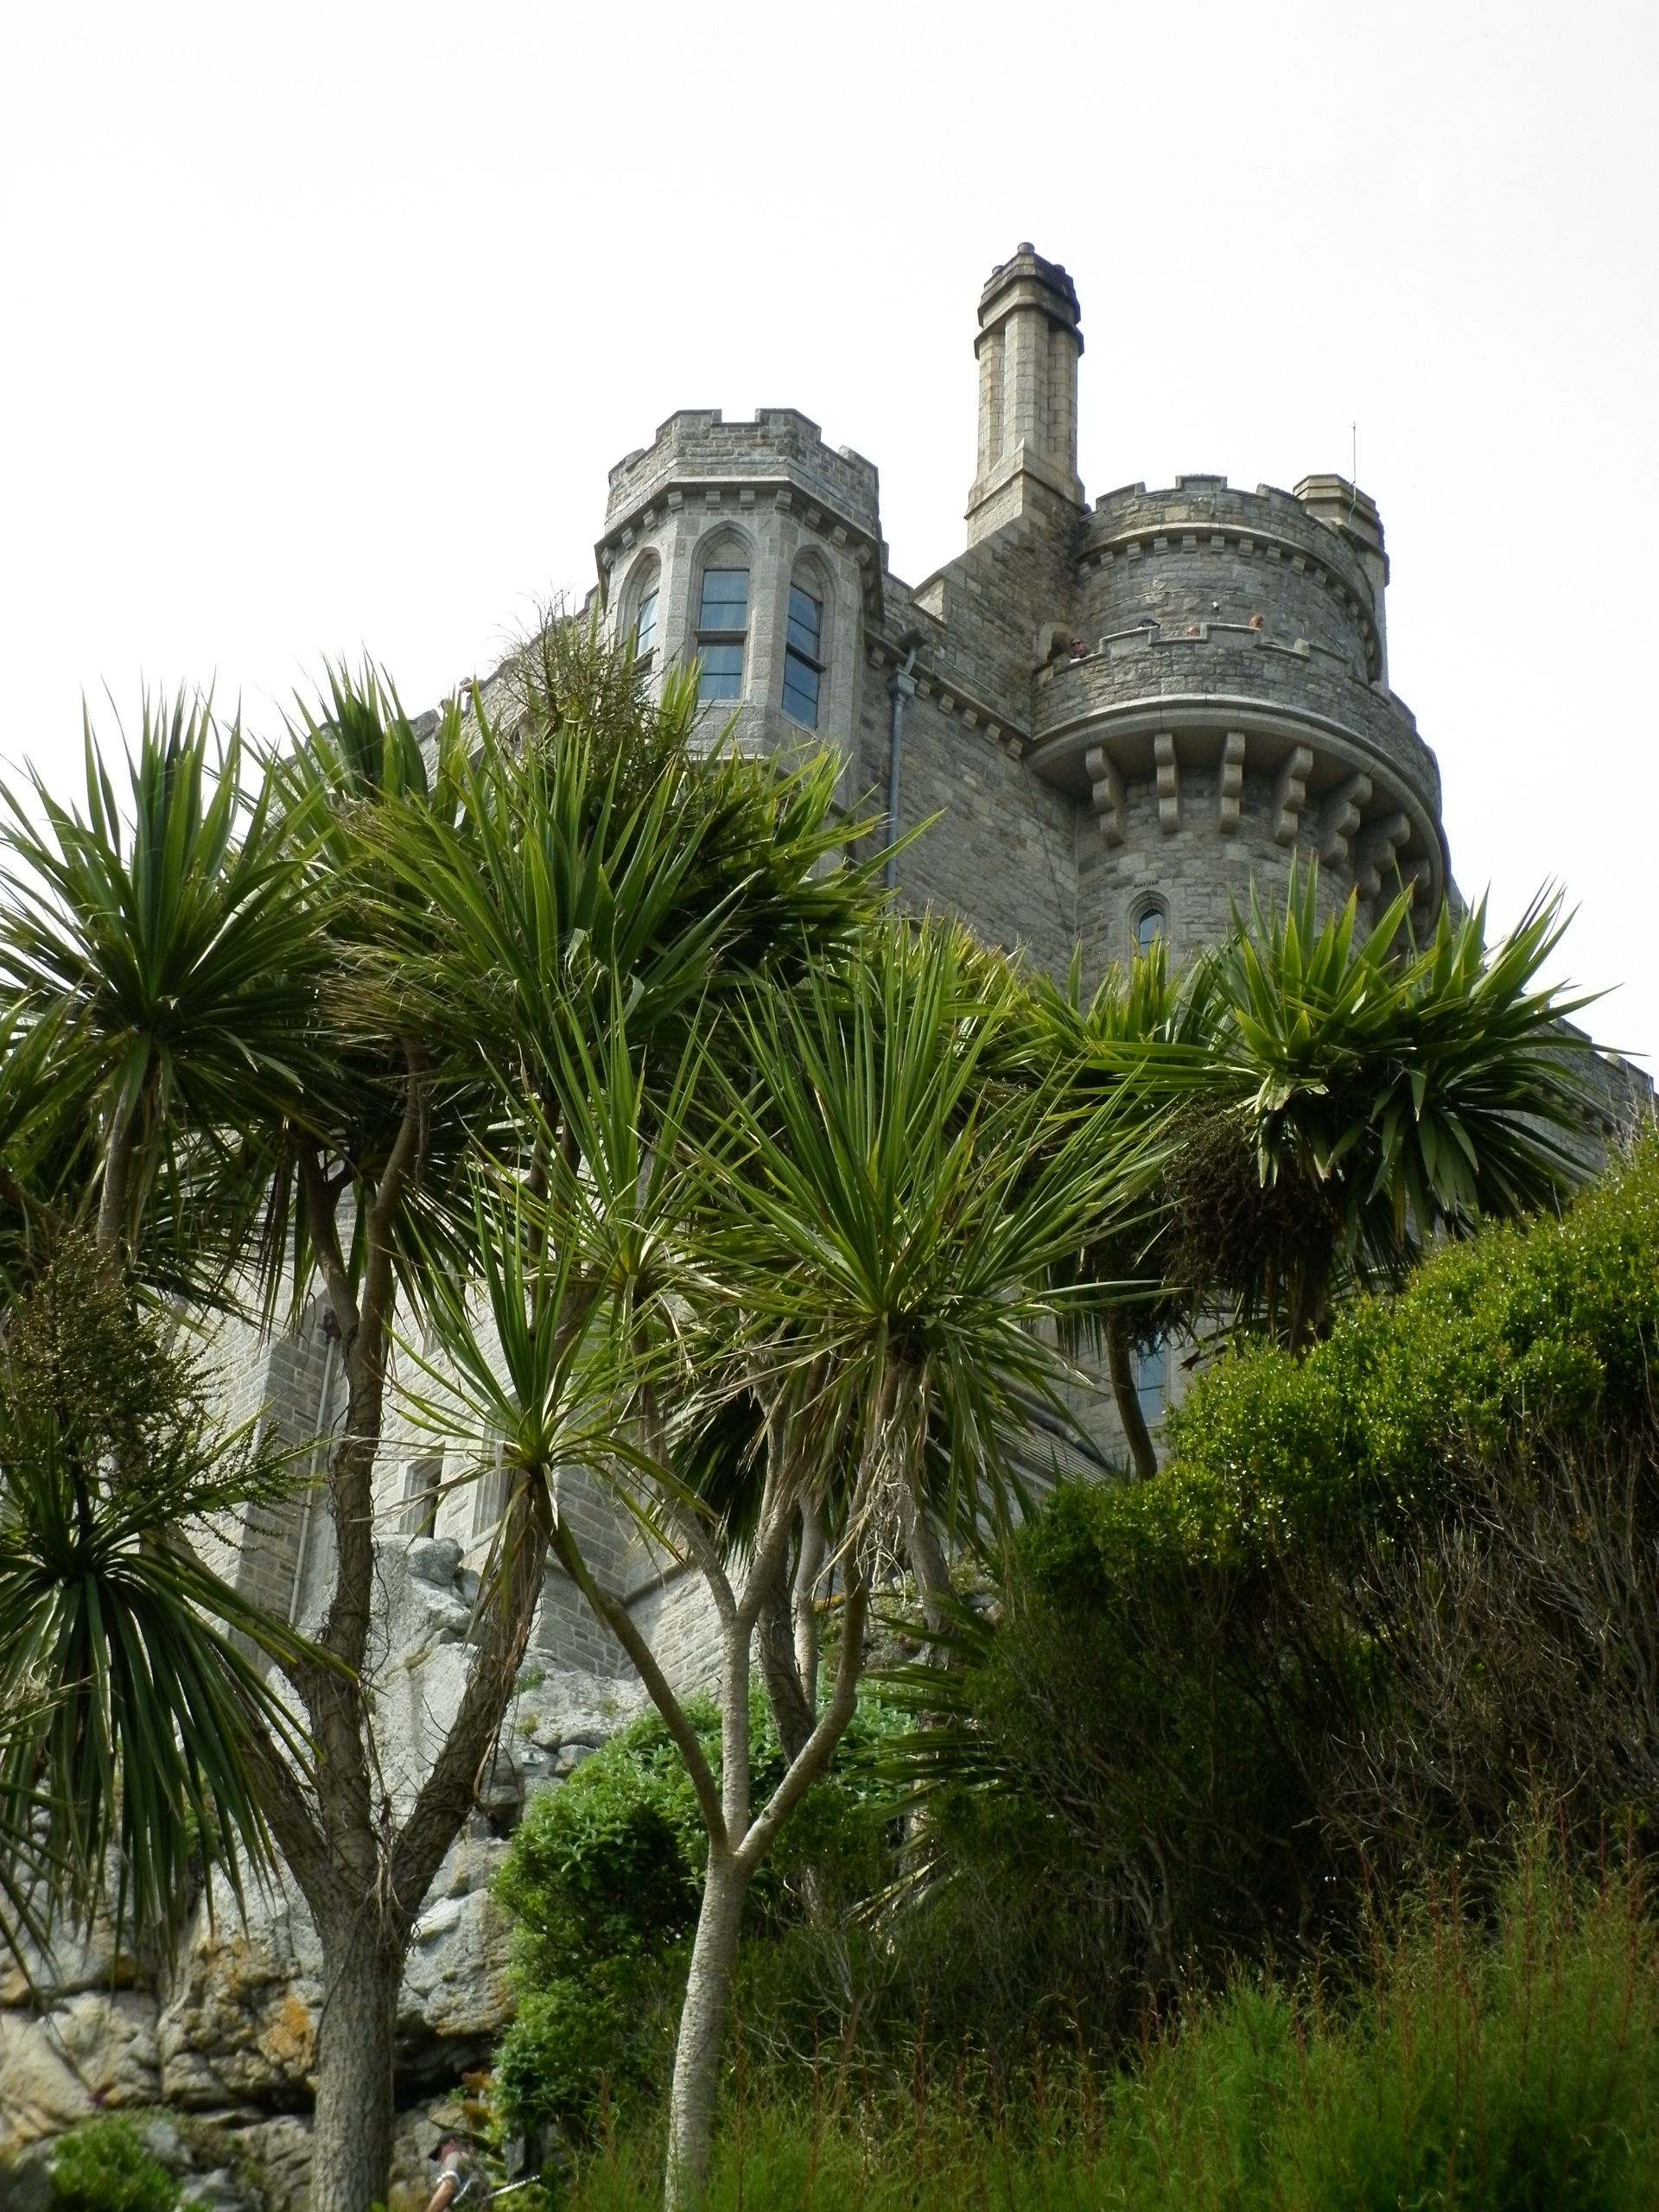 The castle in St Michael's Mount